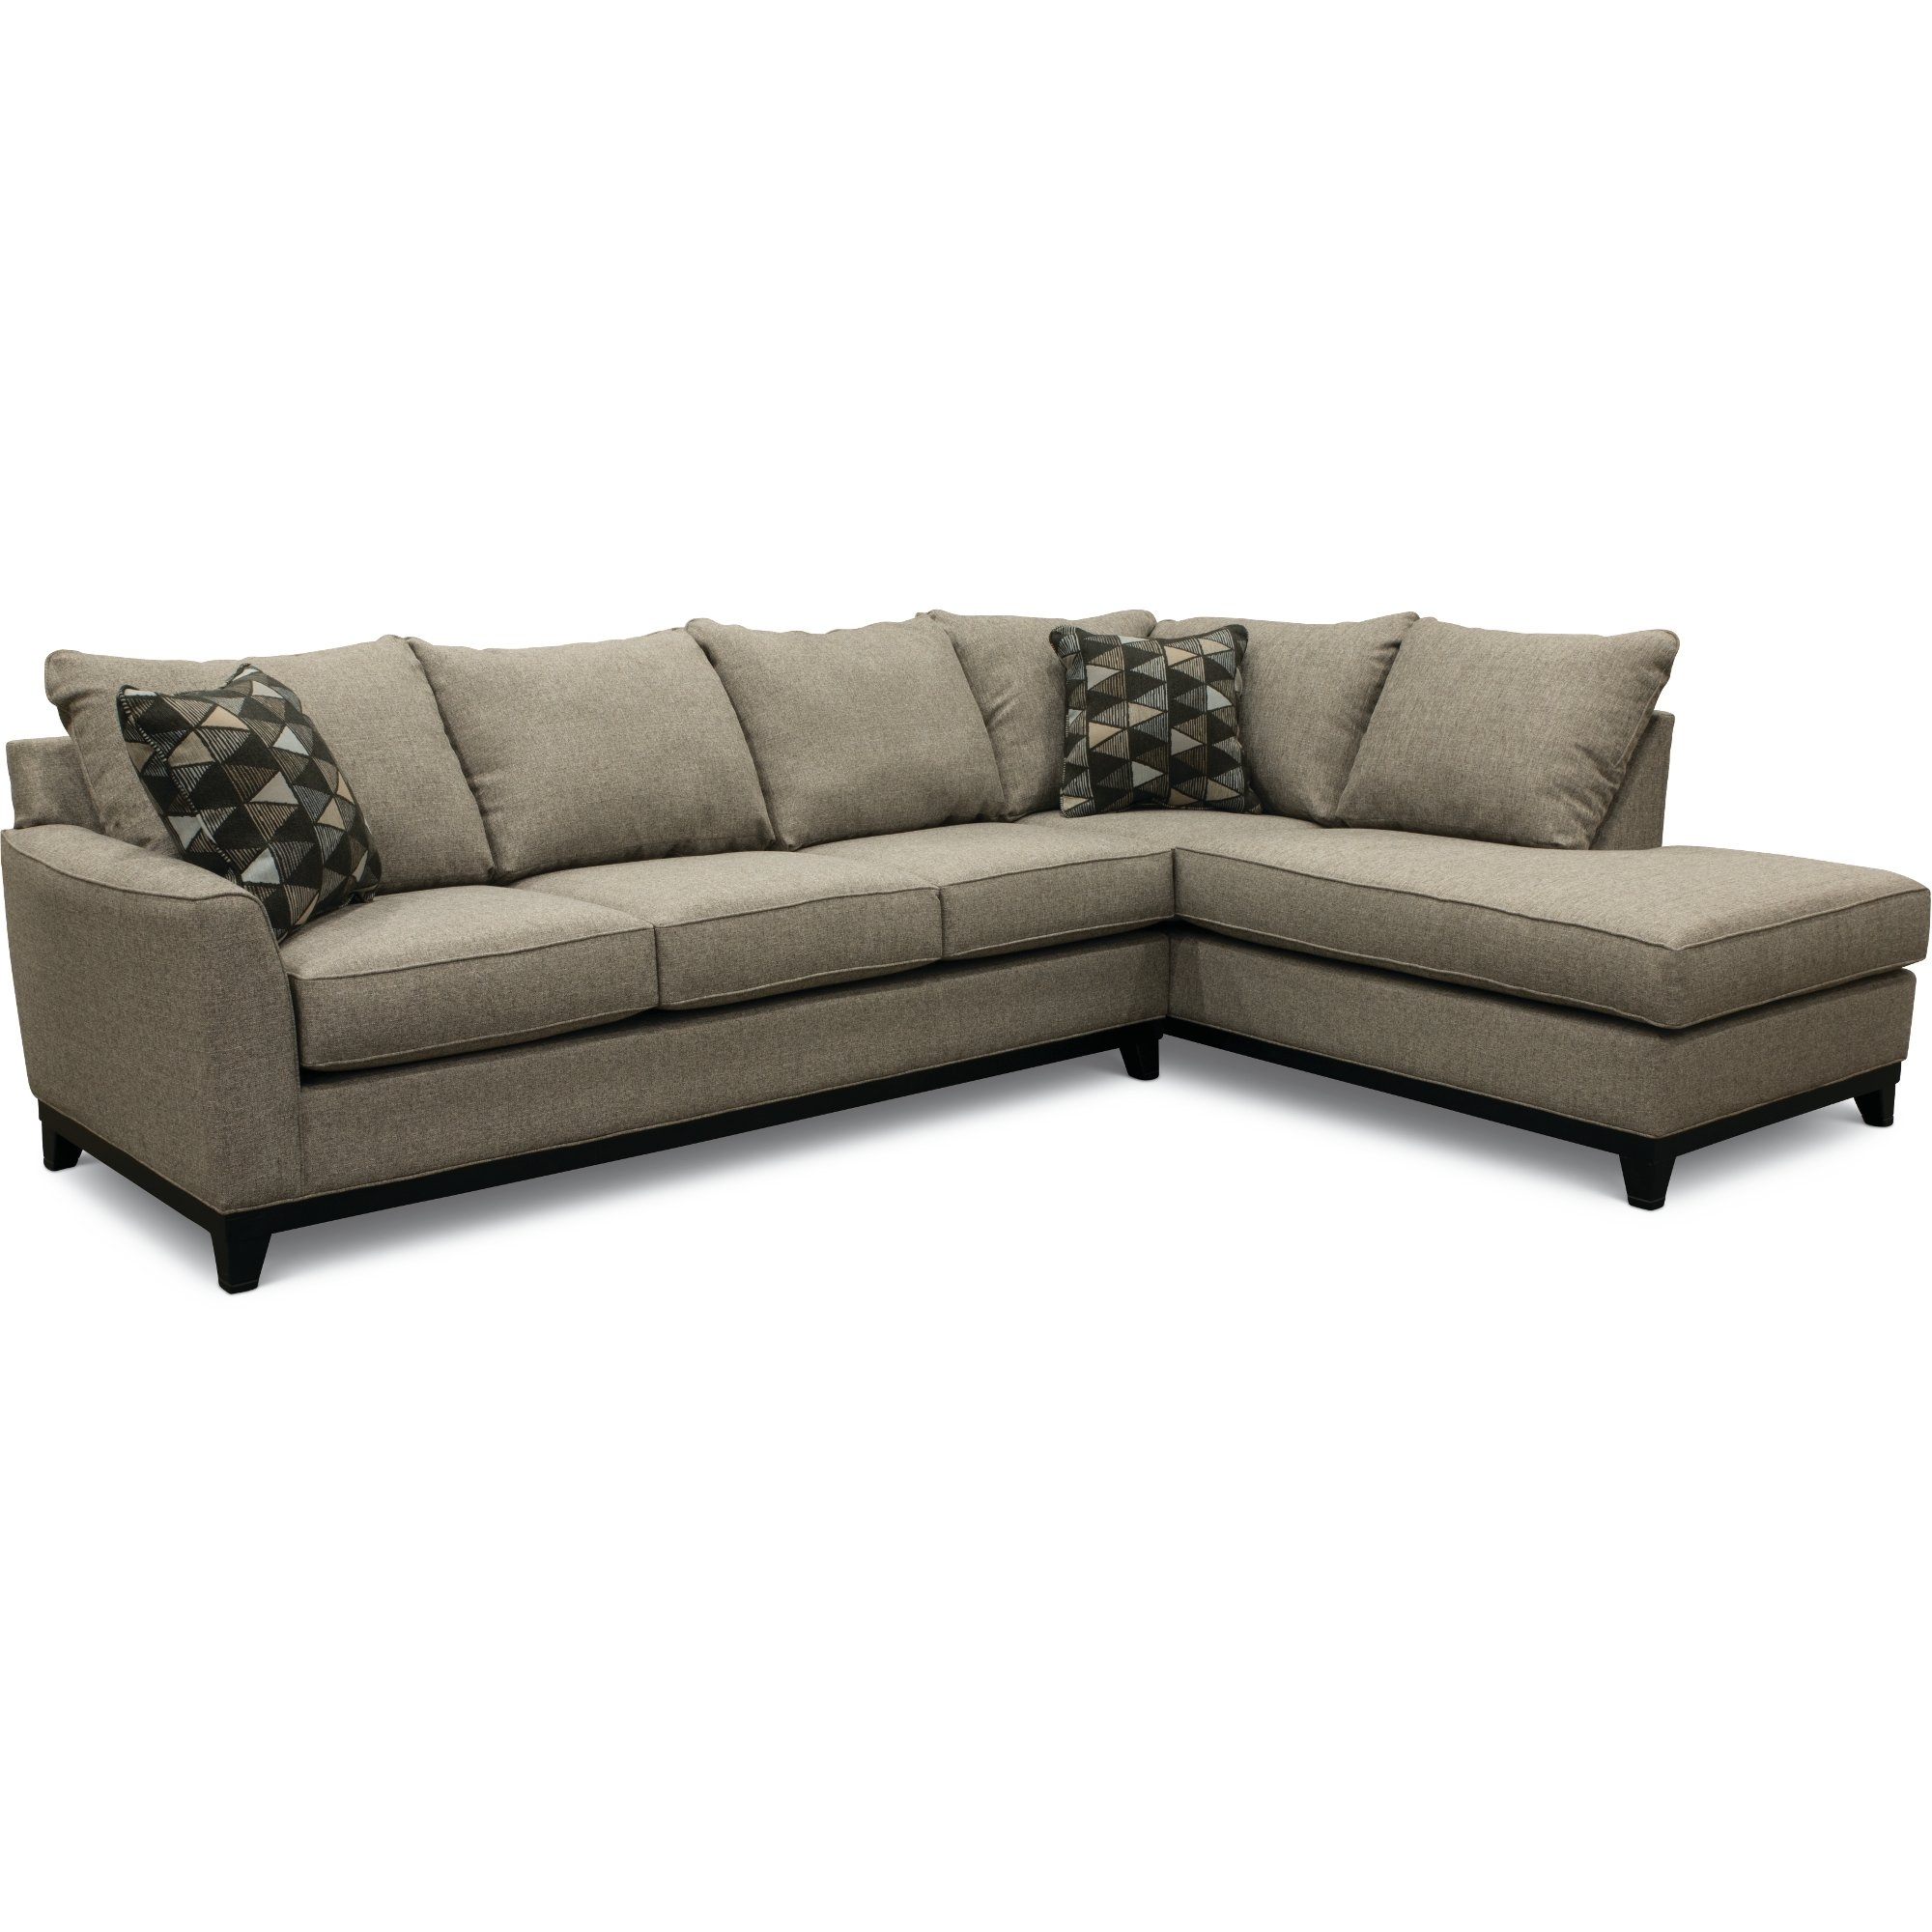 Casual Contemporary Slate Gray 2 Piece Sectional Sofa – Emerson | Rc Throughout Jobs Oat 2 Piece Sectionals With Left Facing Chaise (Image 5 of 25)